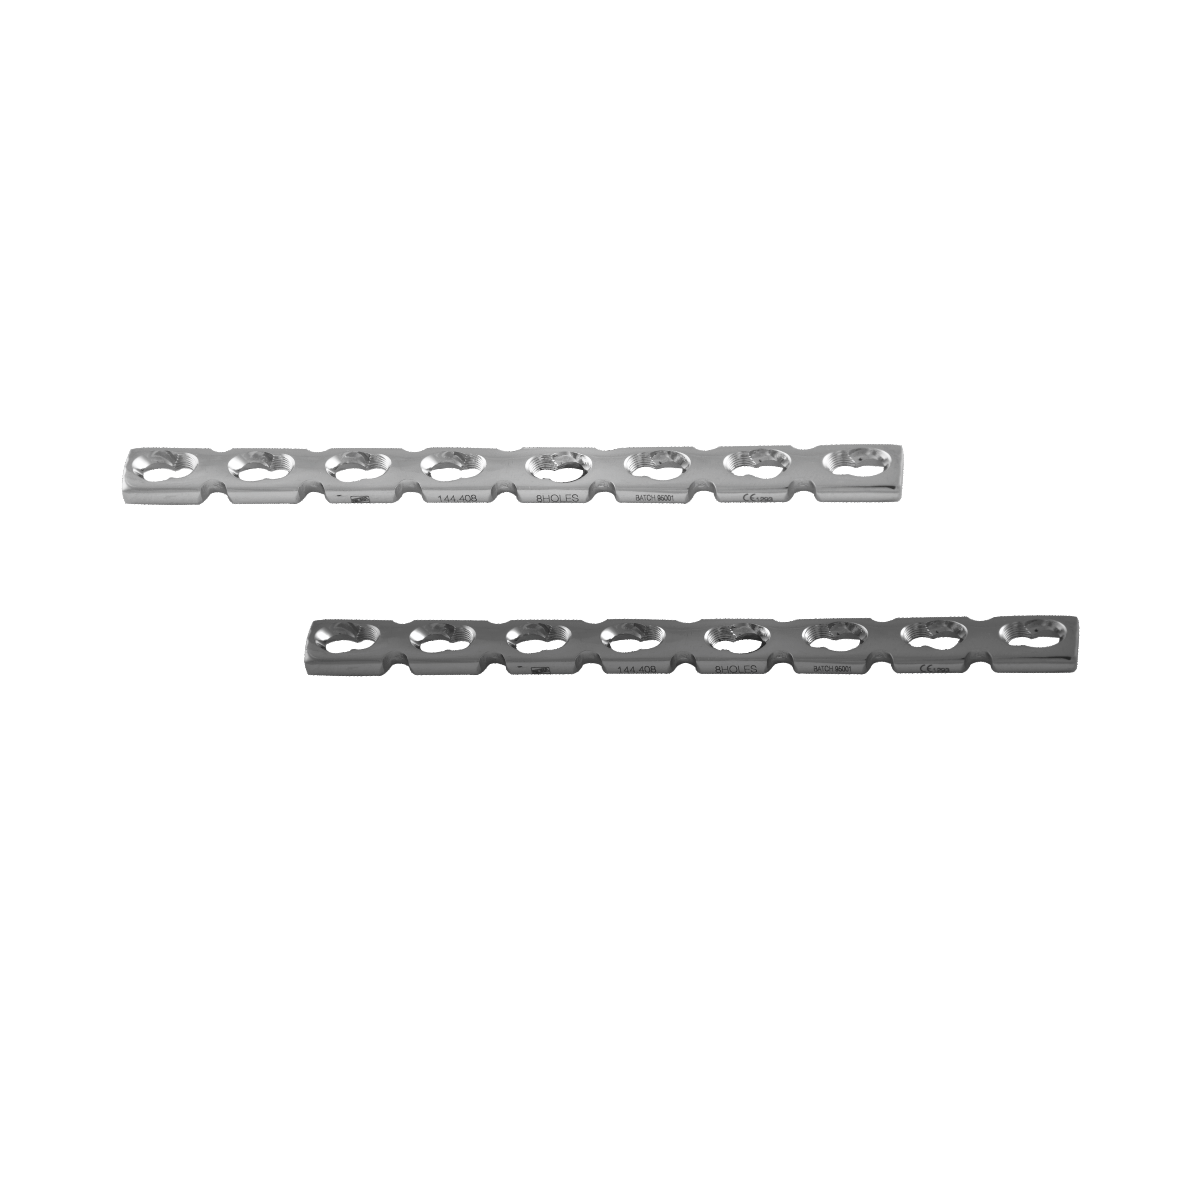 Locking RE – Construction Plate 3.5mm – Straight (Thickness – 3.5mm)